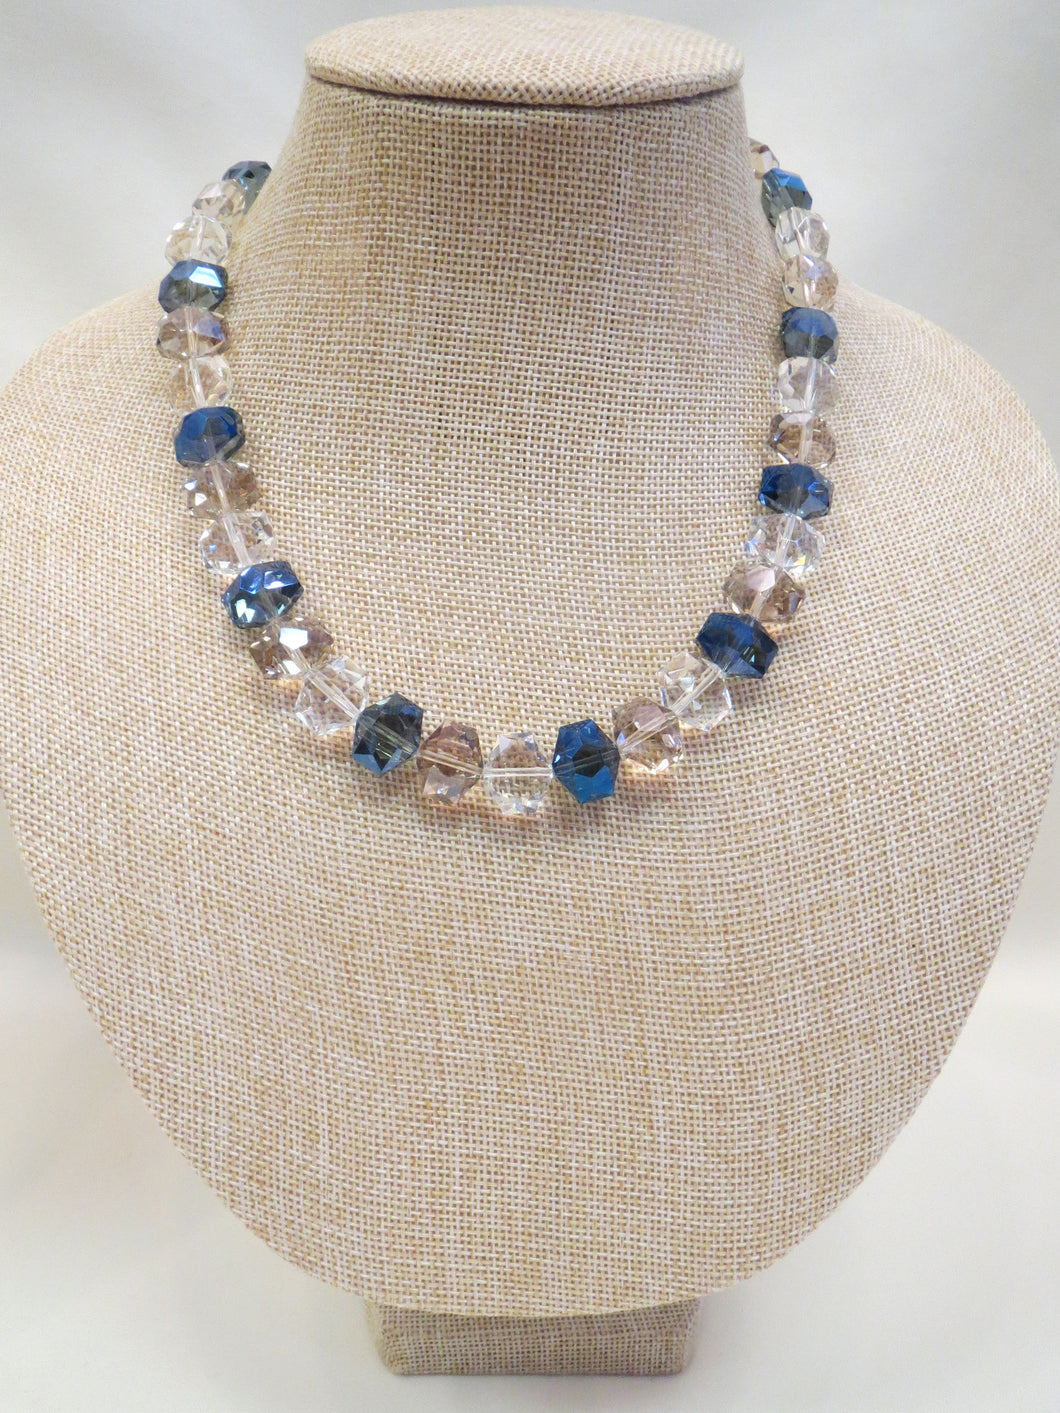 ADO | Blue & Clear Beaded Necklace Short - All Decd Out